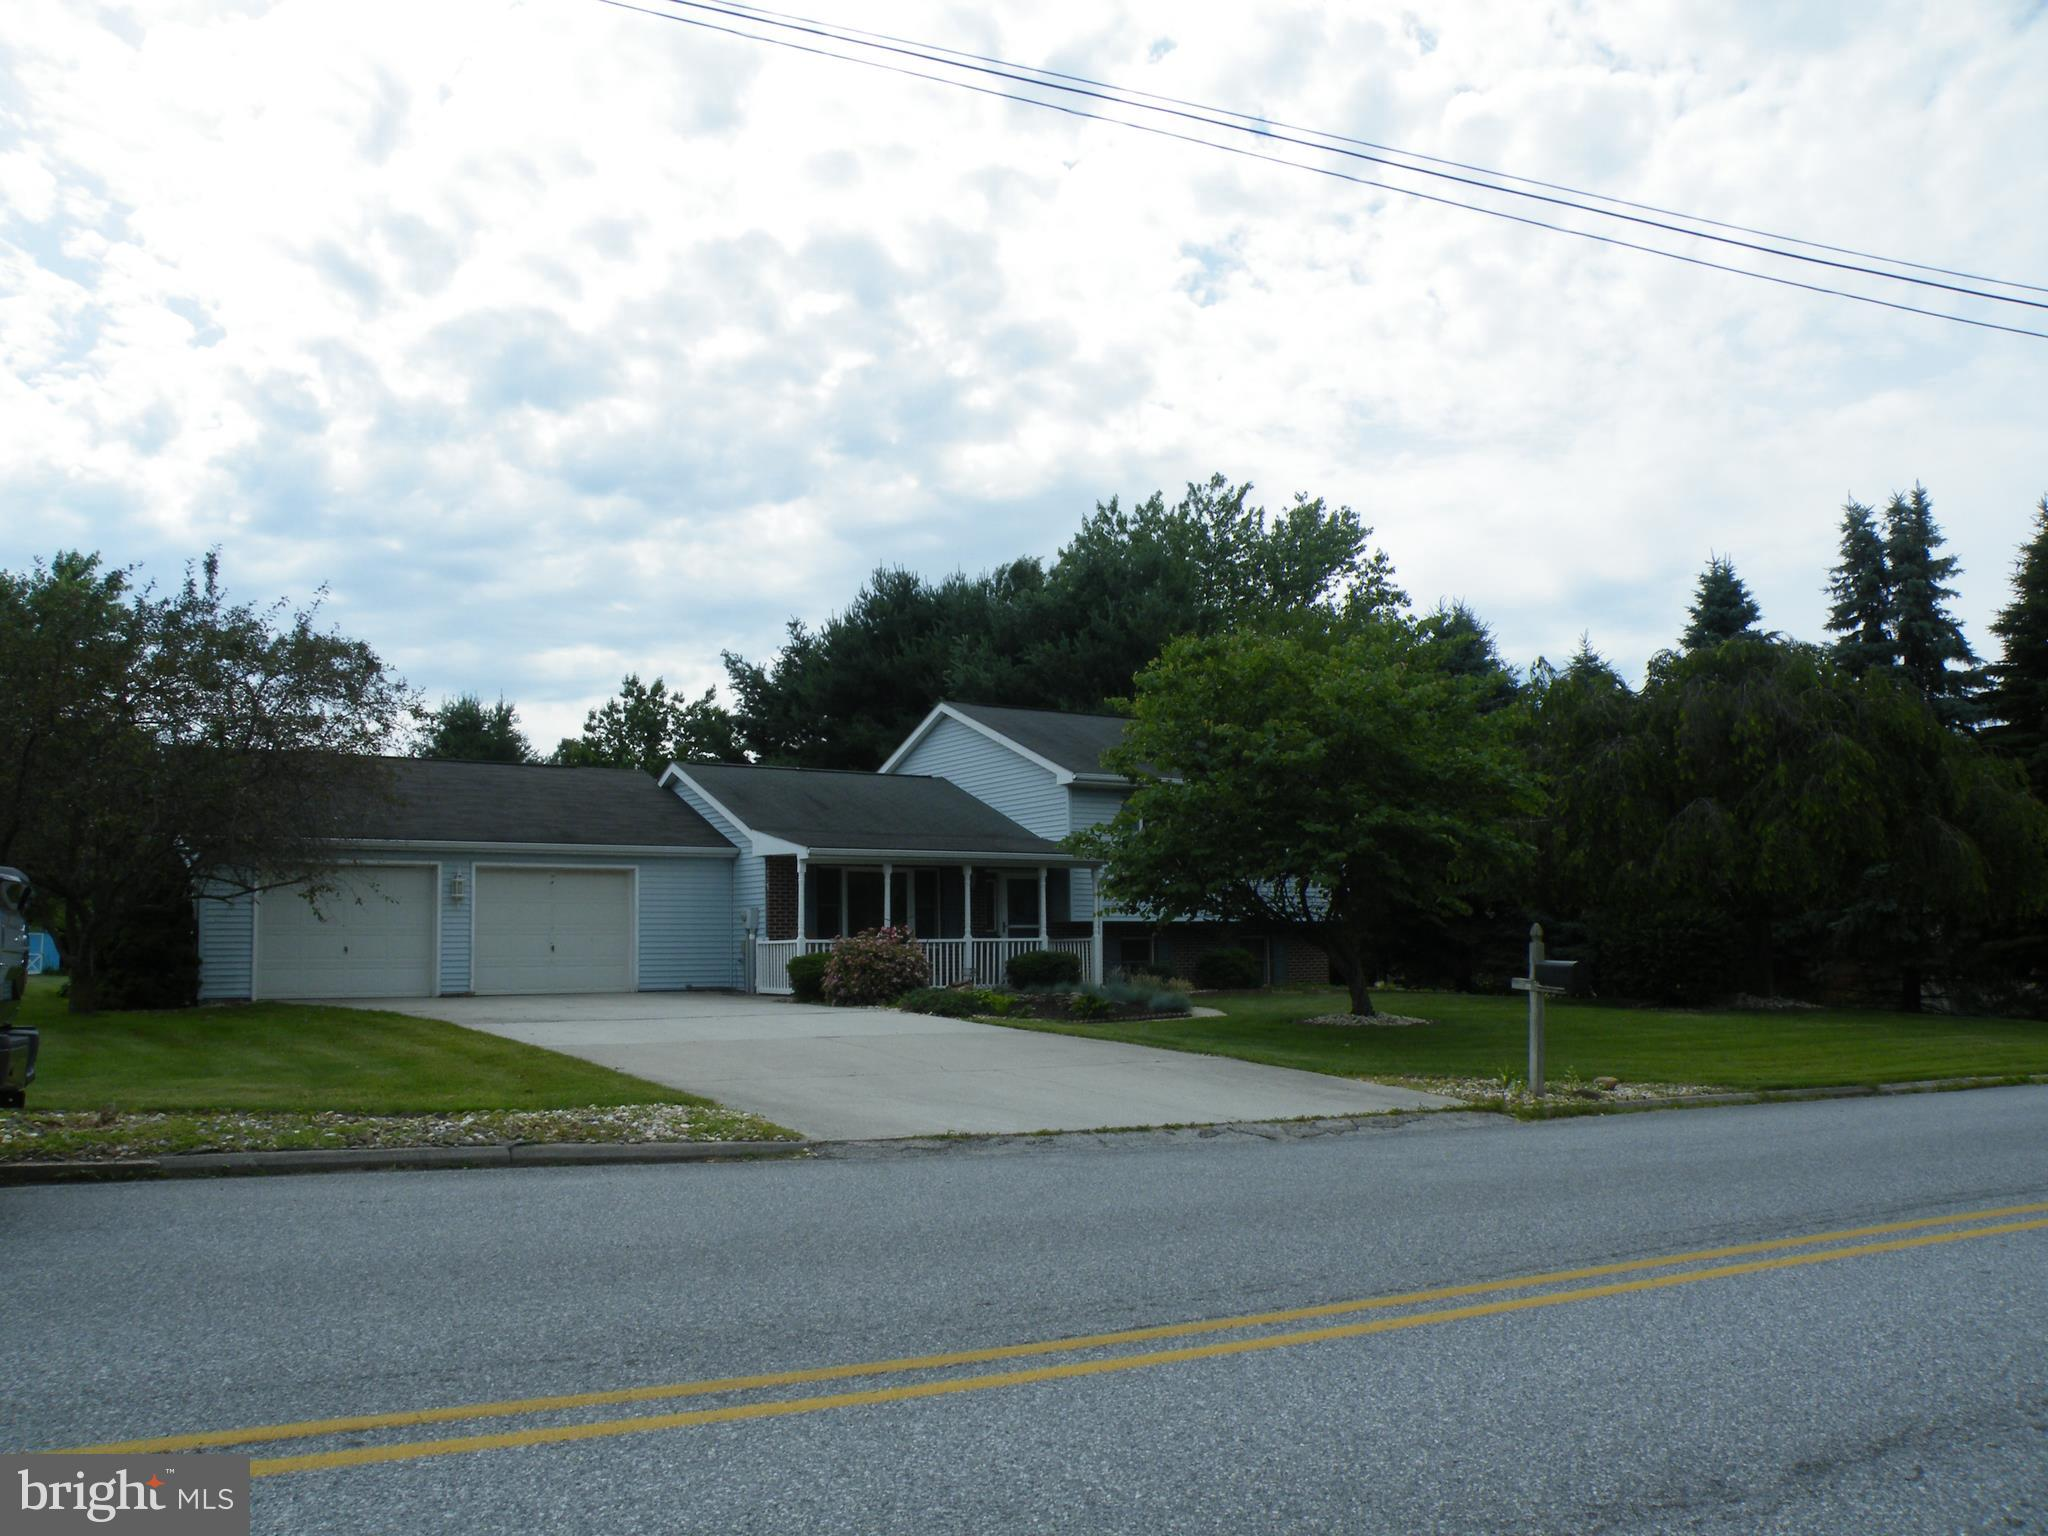 411 MCLAND ROAD, MOUNT HOLLY SPRINGS, PA 17065